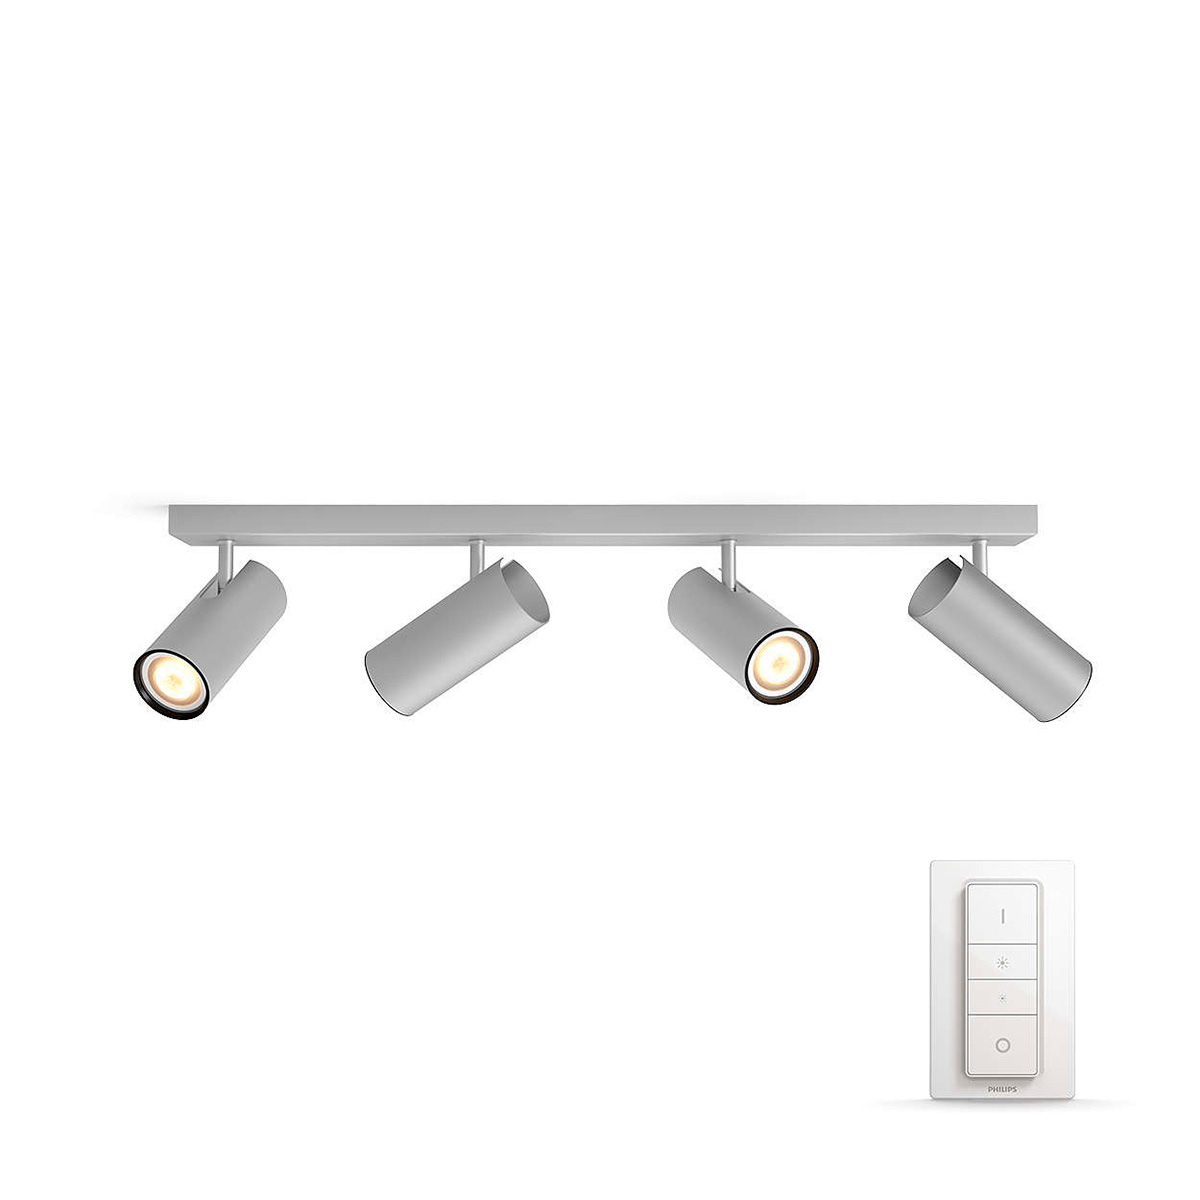 Image of   Philips Connected spot - White ambiance - Buratto - Aluminium